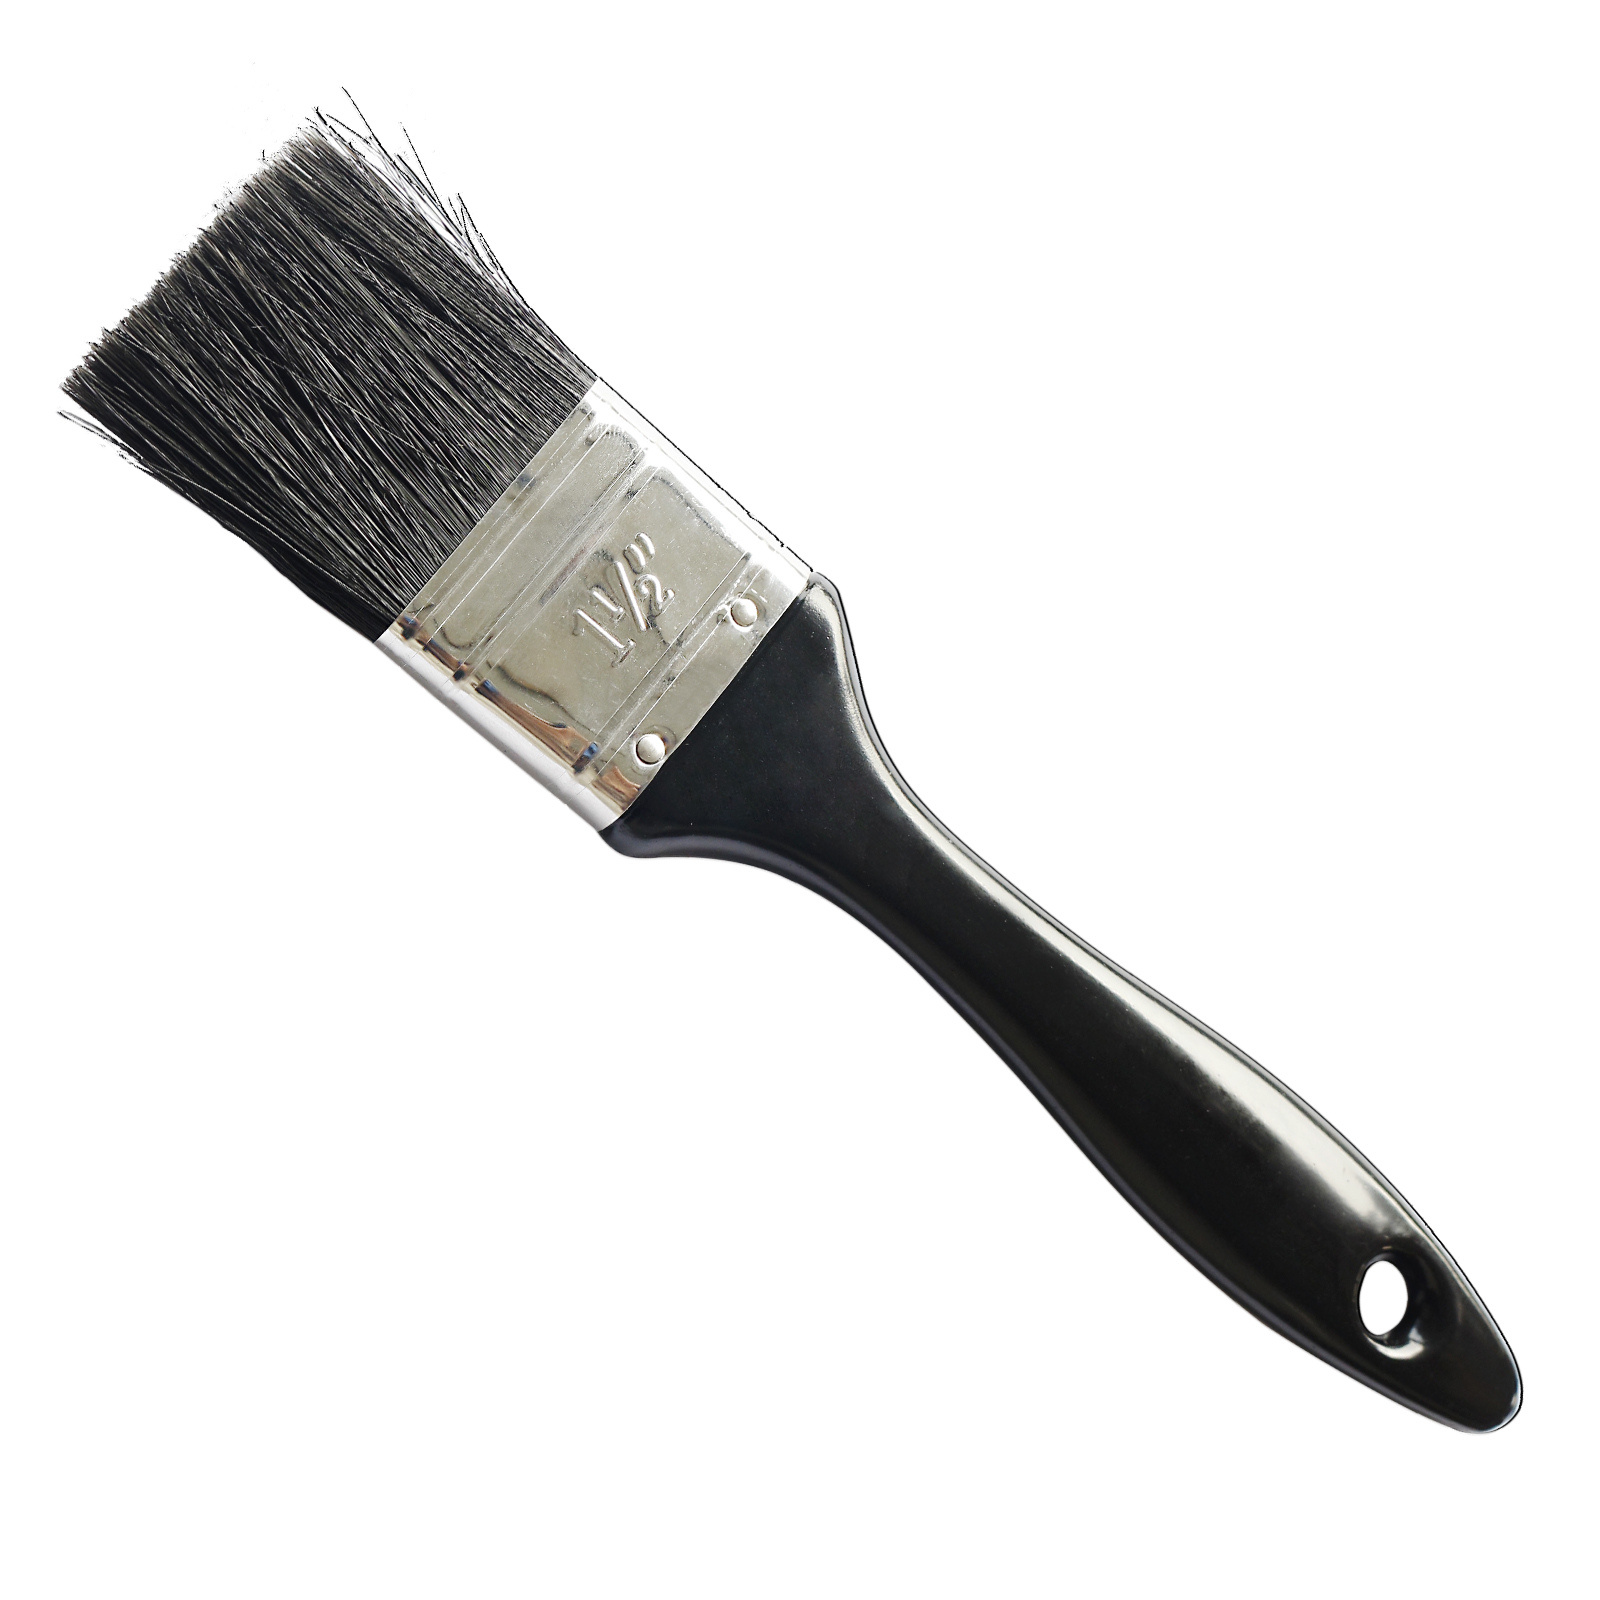 Painting Tools 38mm Paint Brush with Natural Pure Bristle and Plastic Handle